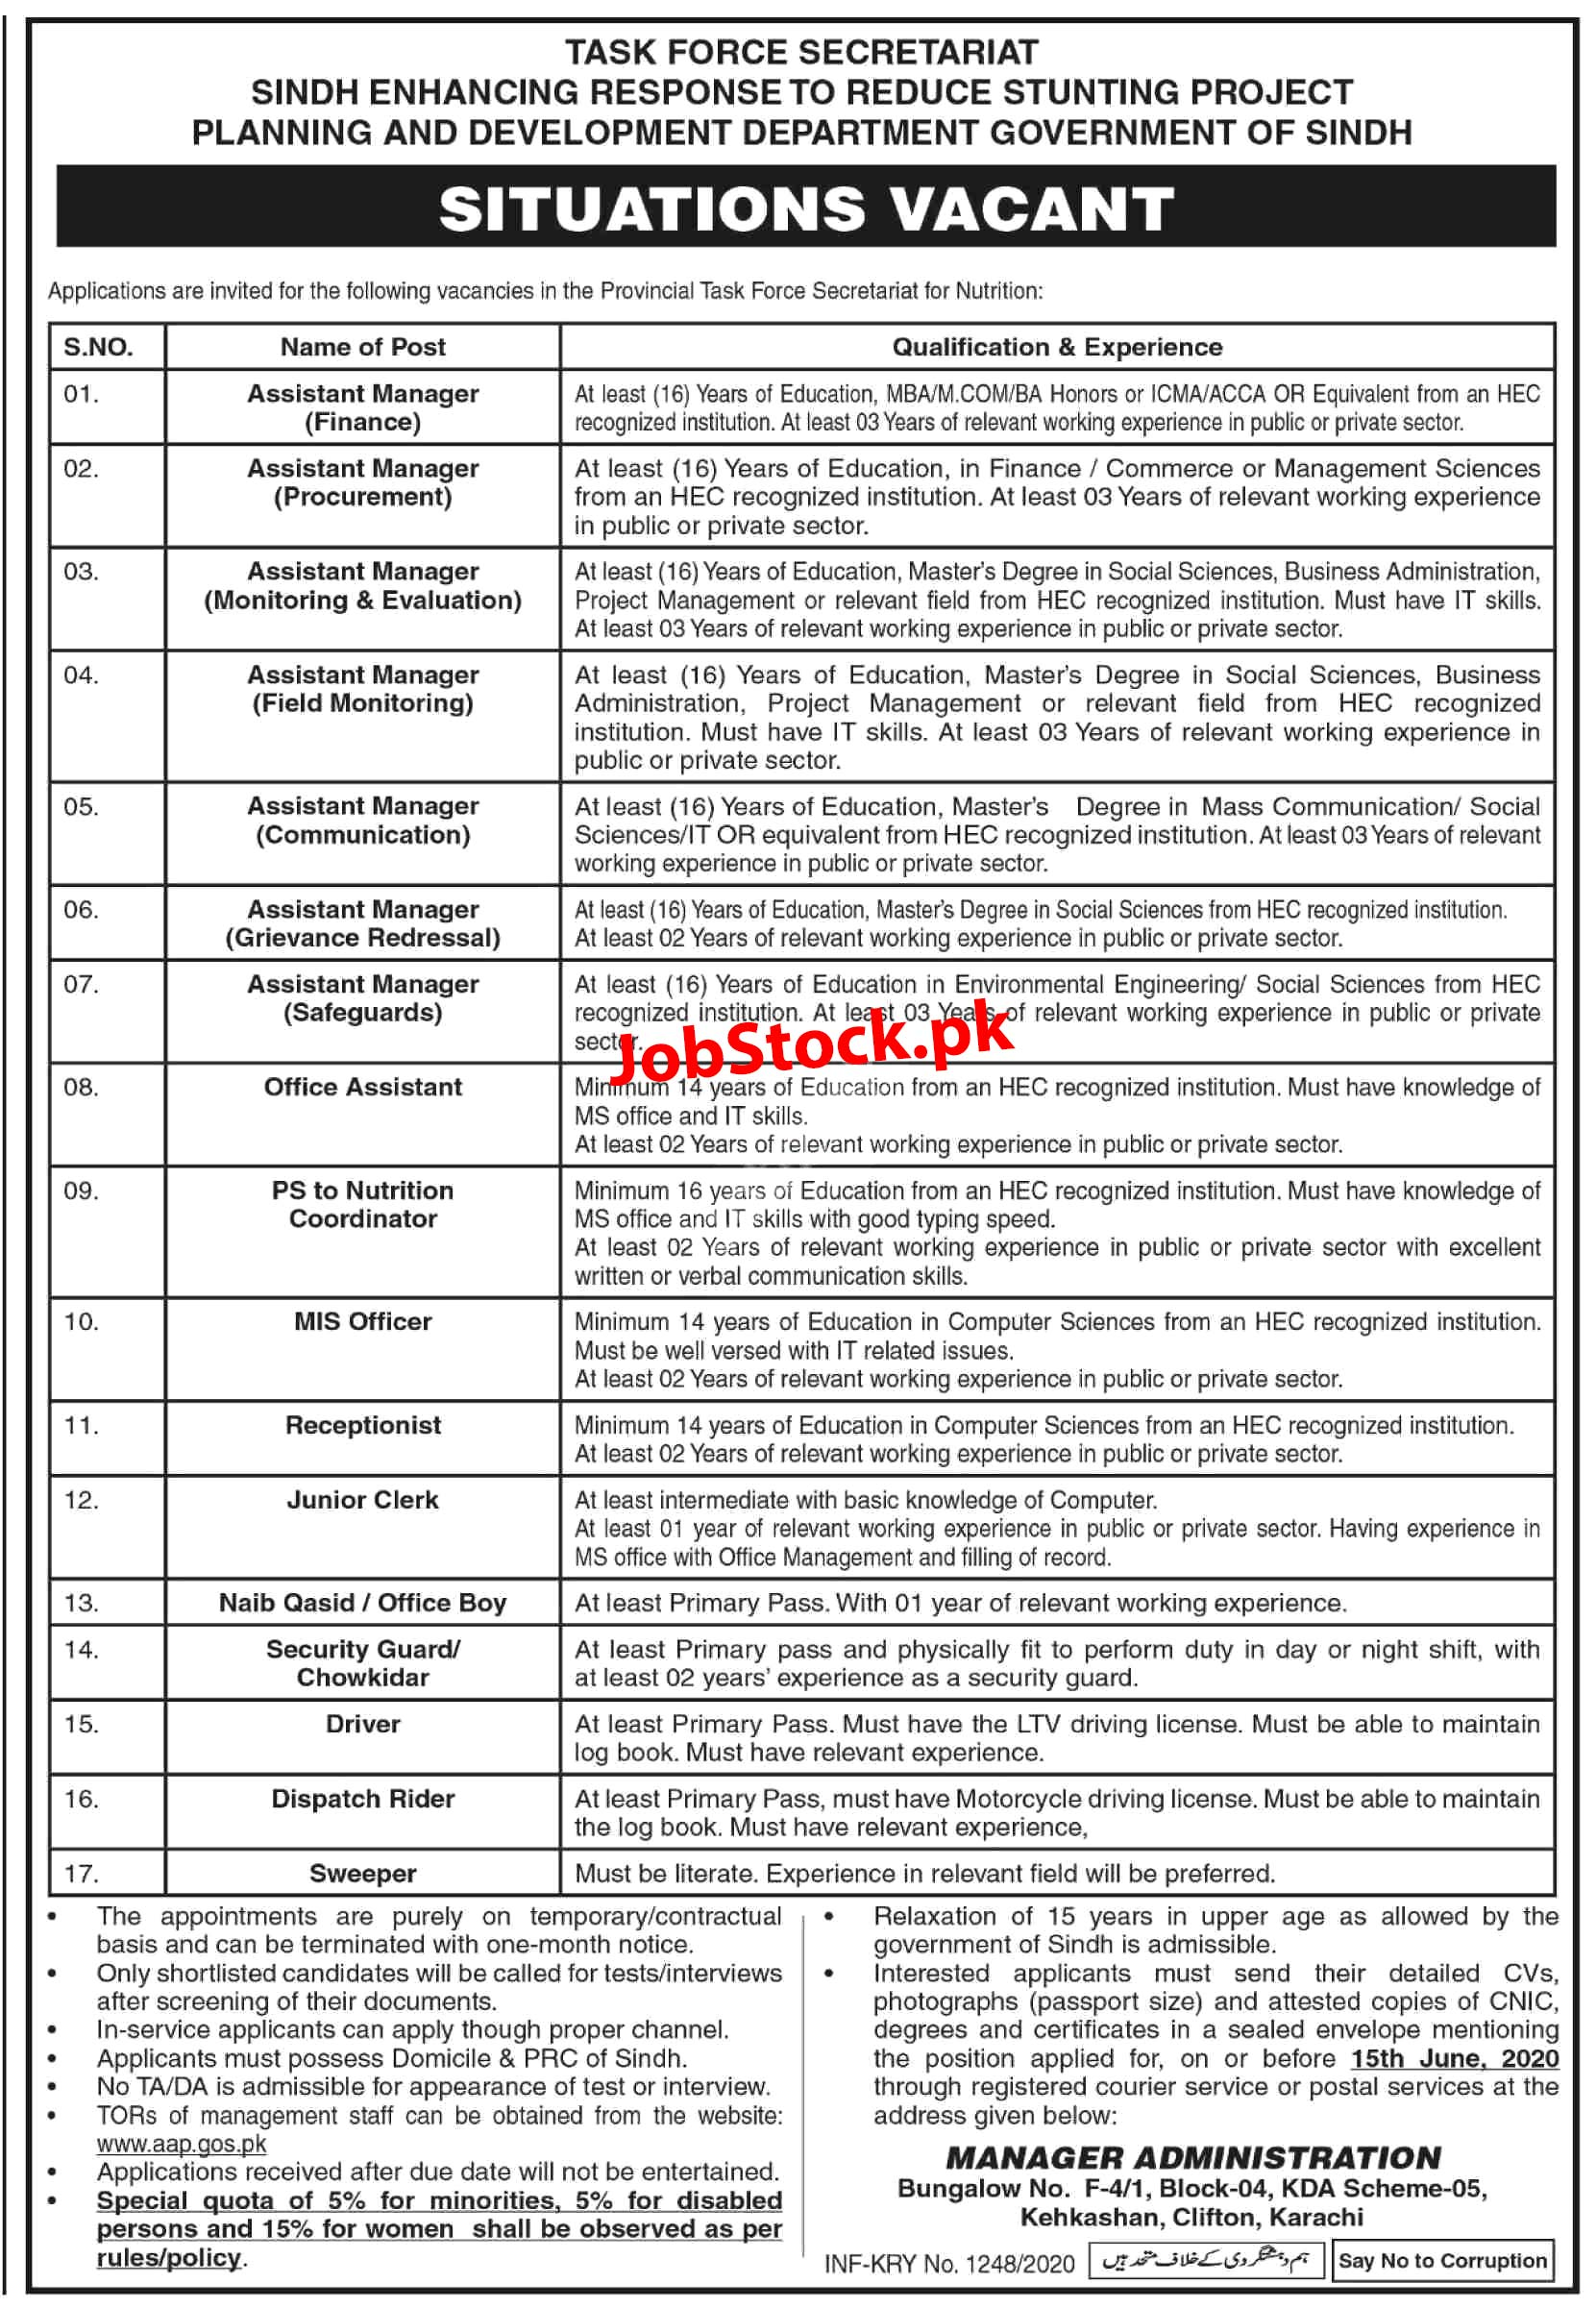 Jobs In Task Force Secretariat 2020 Planning And Development Department Latest